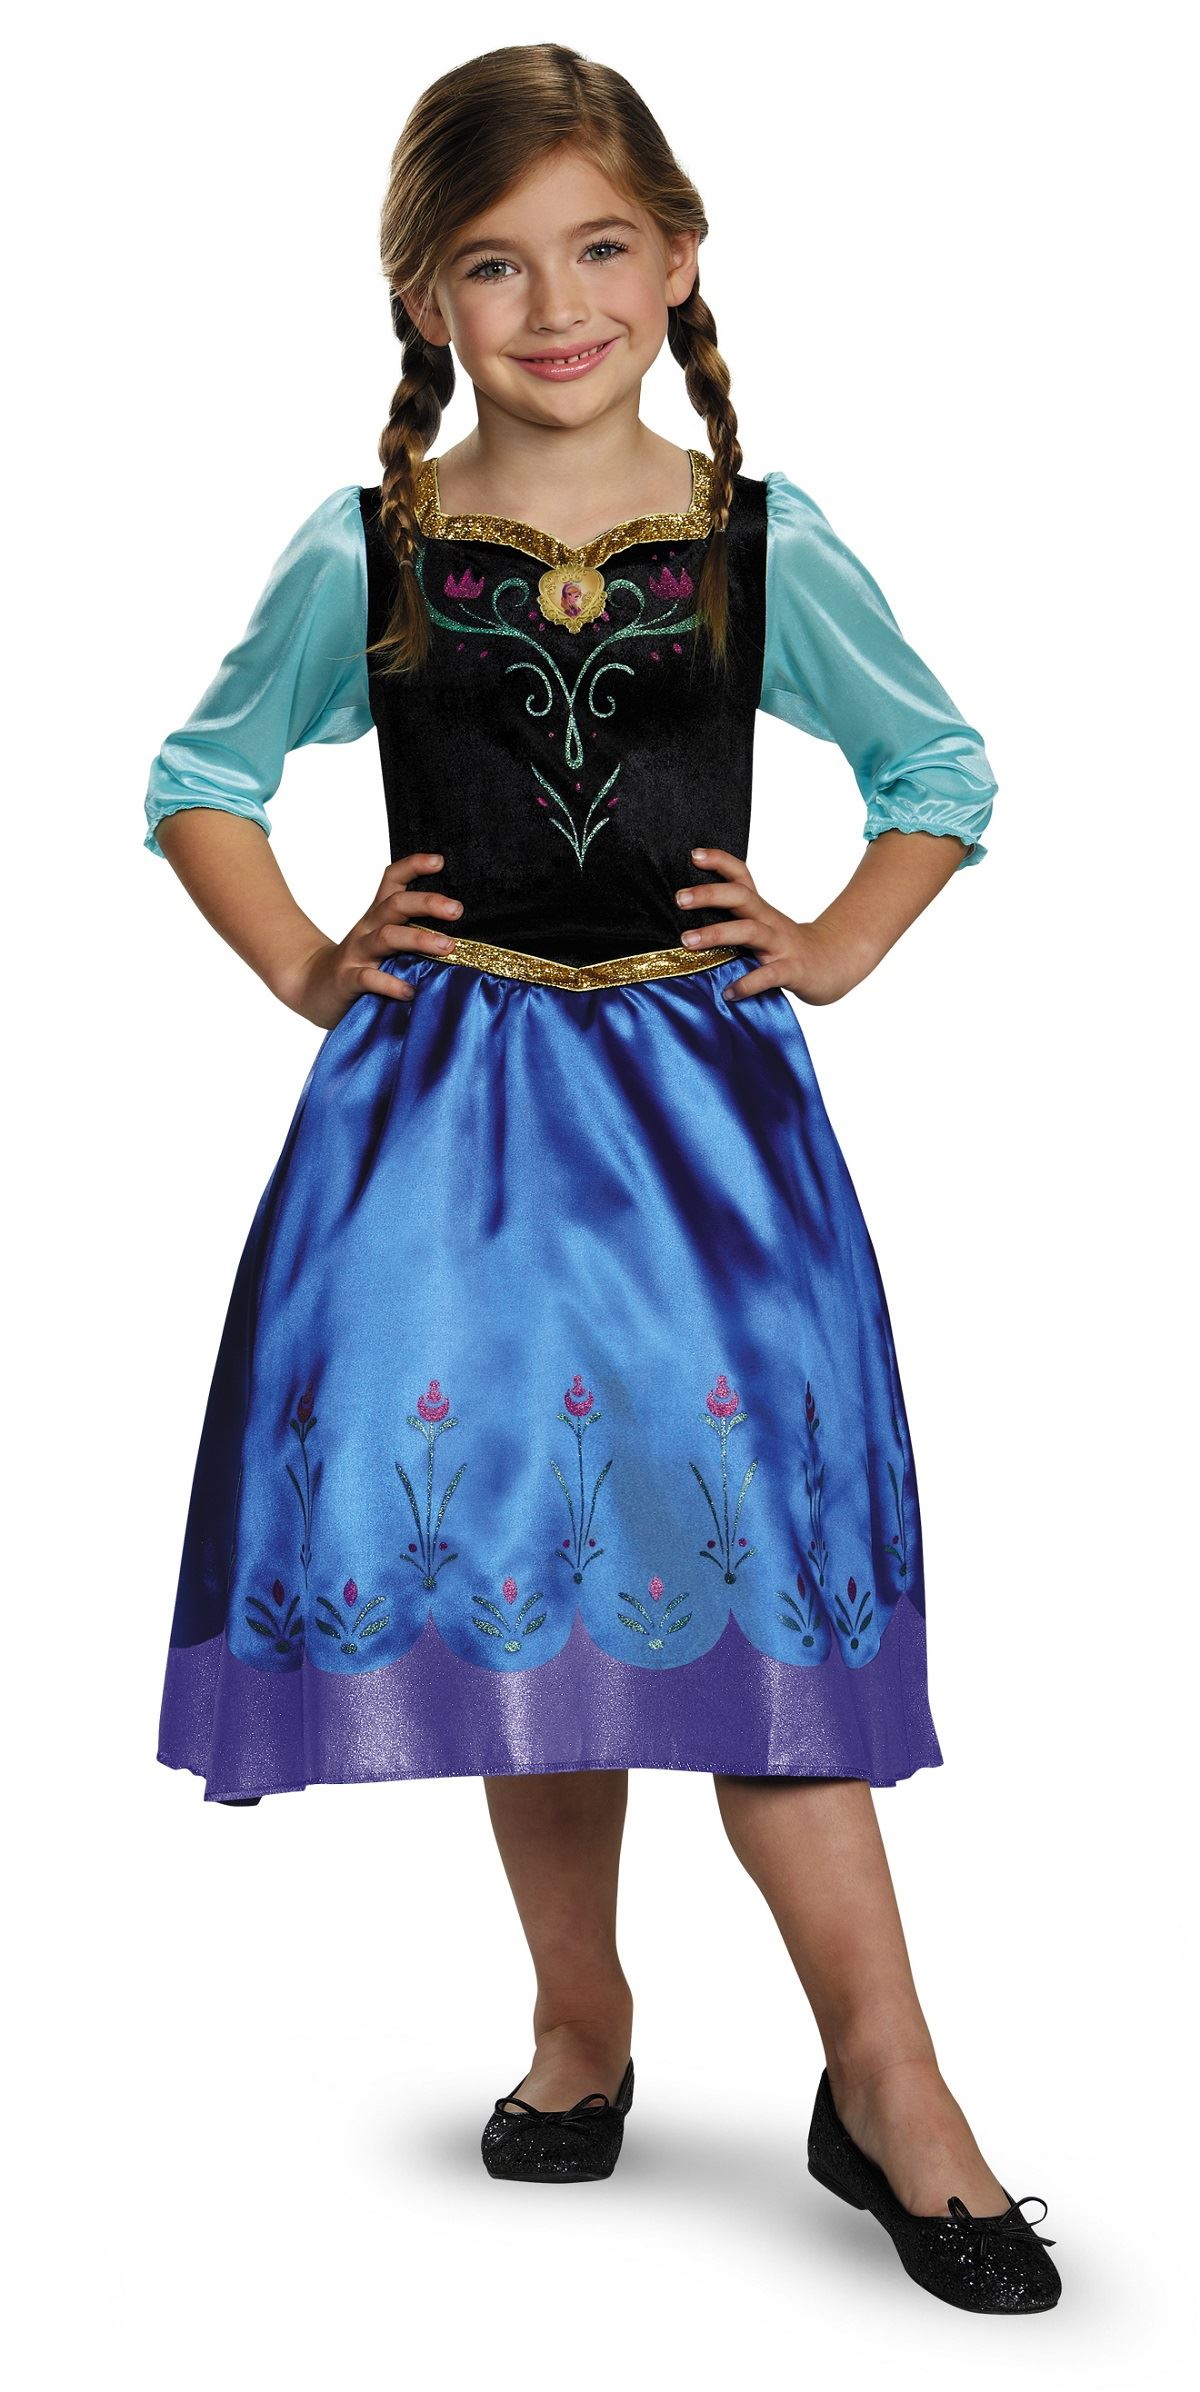 ... Kids Anna Disney Princess Girls Frozen Costume  sc 1 st  The Costume Land & Kids Anna Disney Princess Girls Frozen Costume | $20.99 | The ...